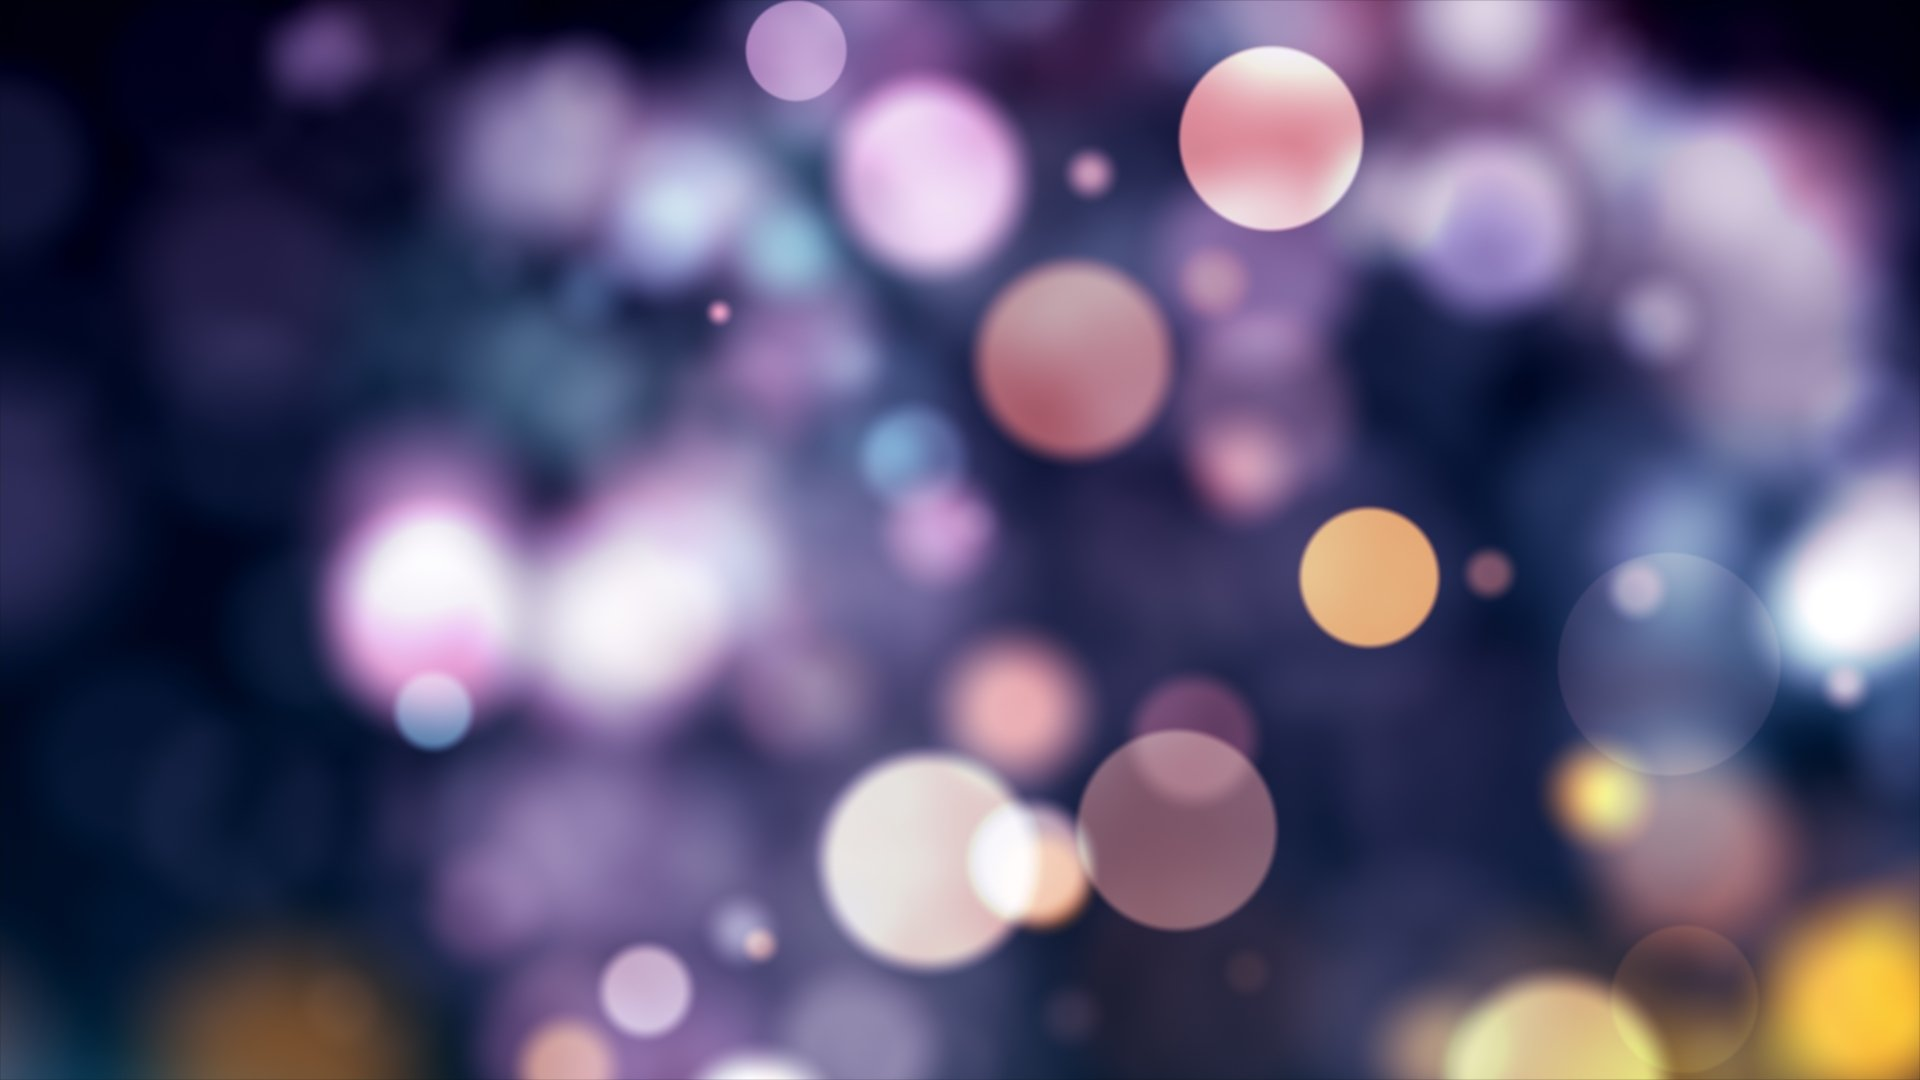 Artistic - Bokeh  Photography Light Purple Circle Blur Wallpaper